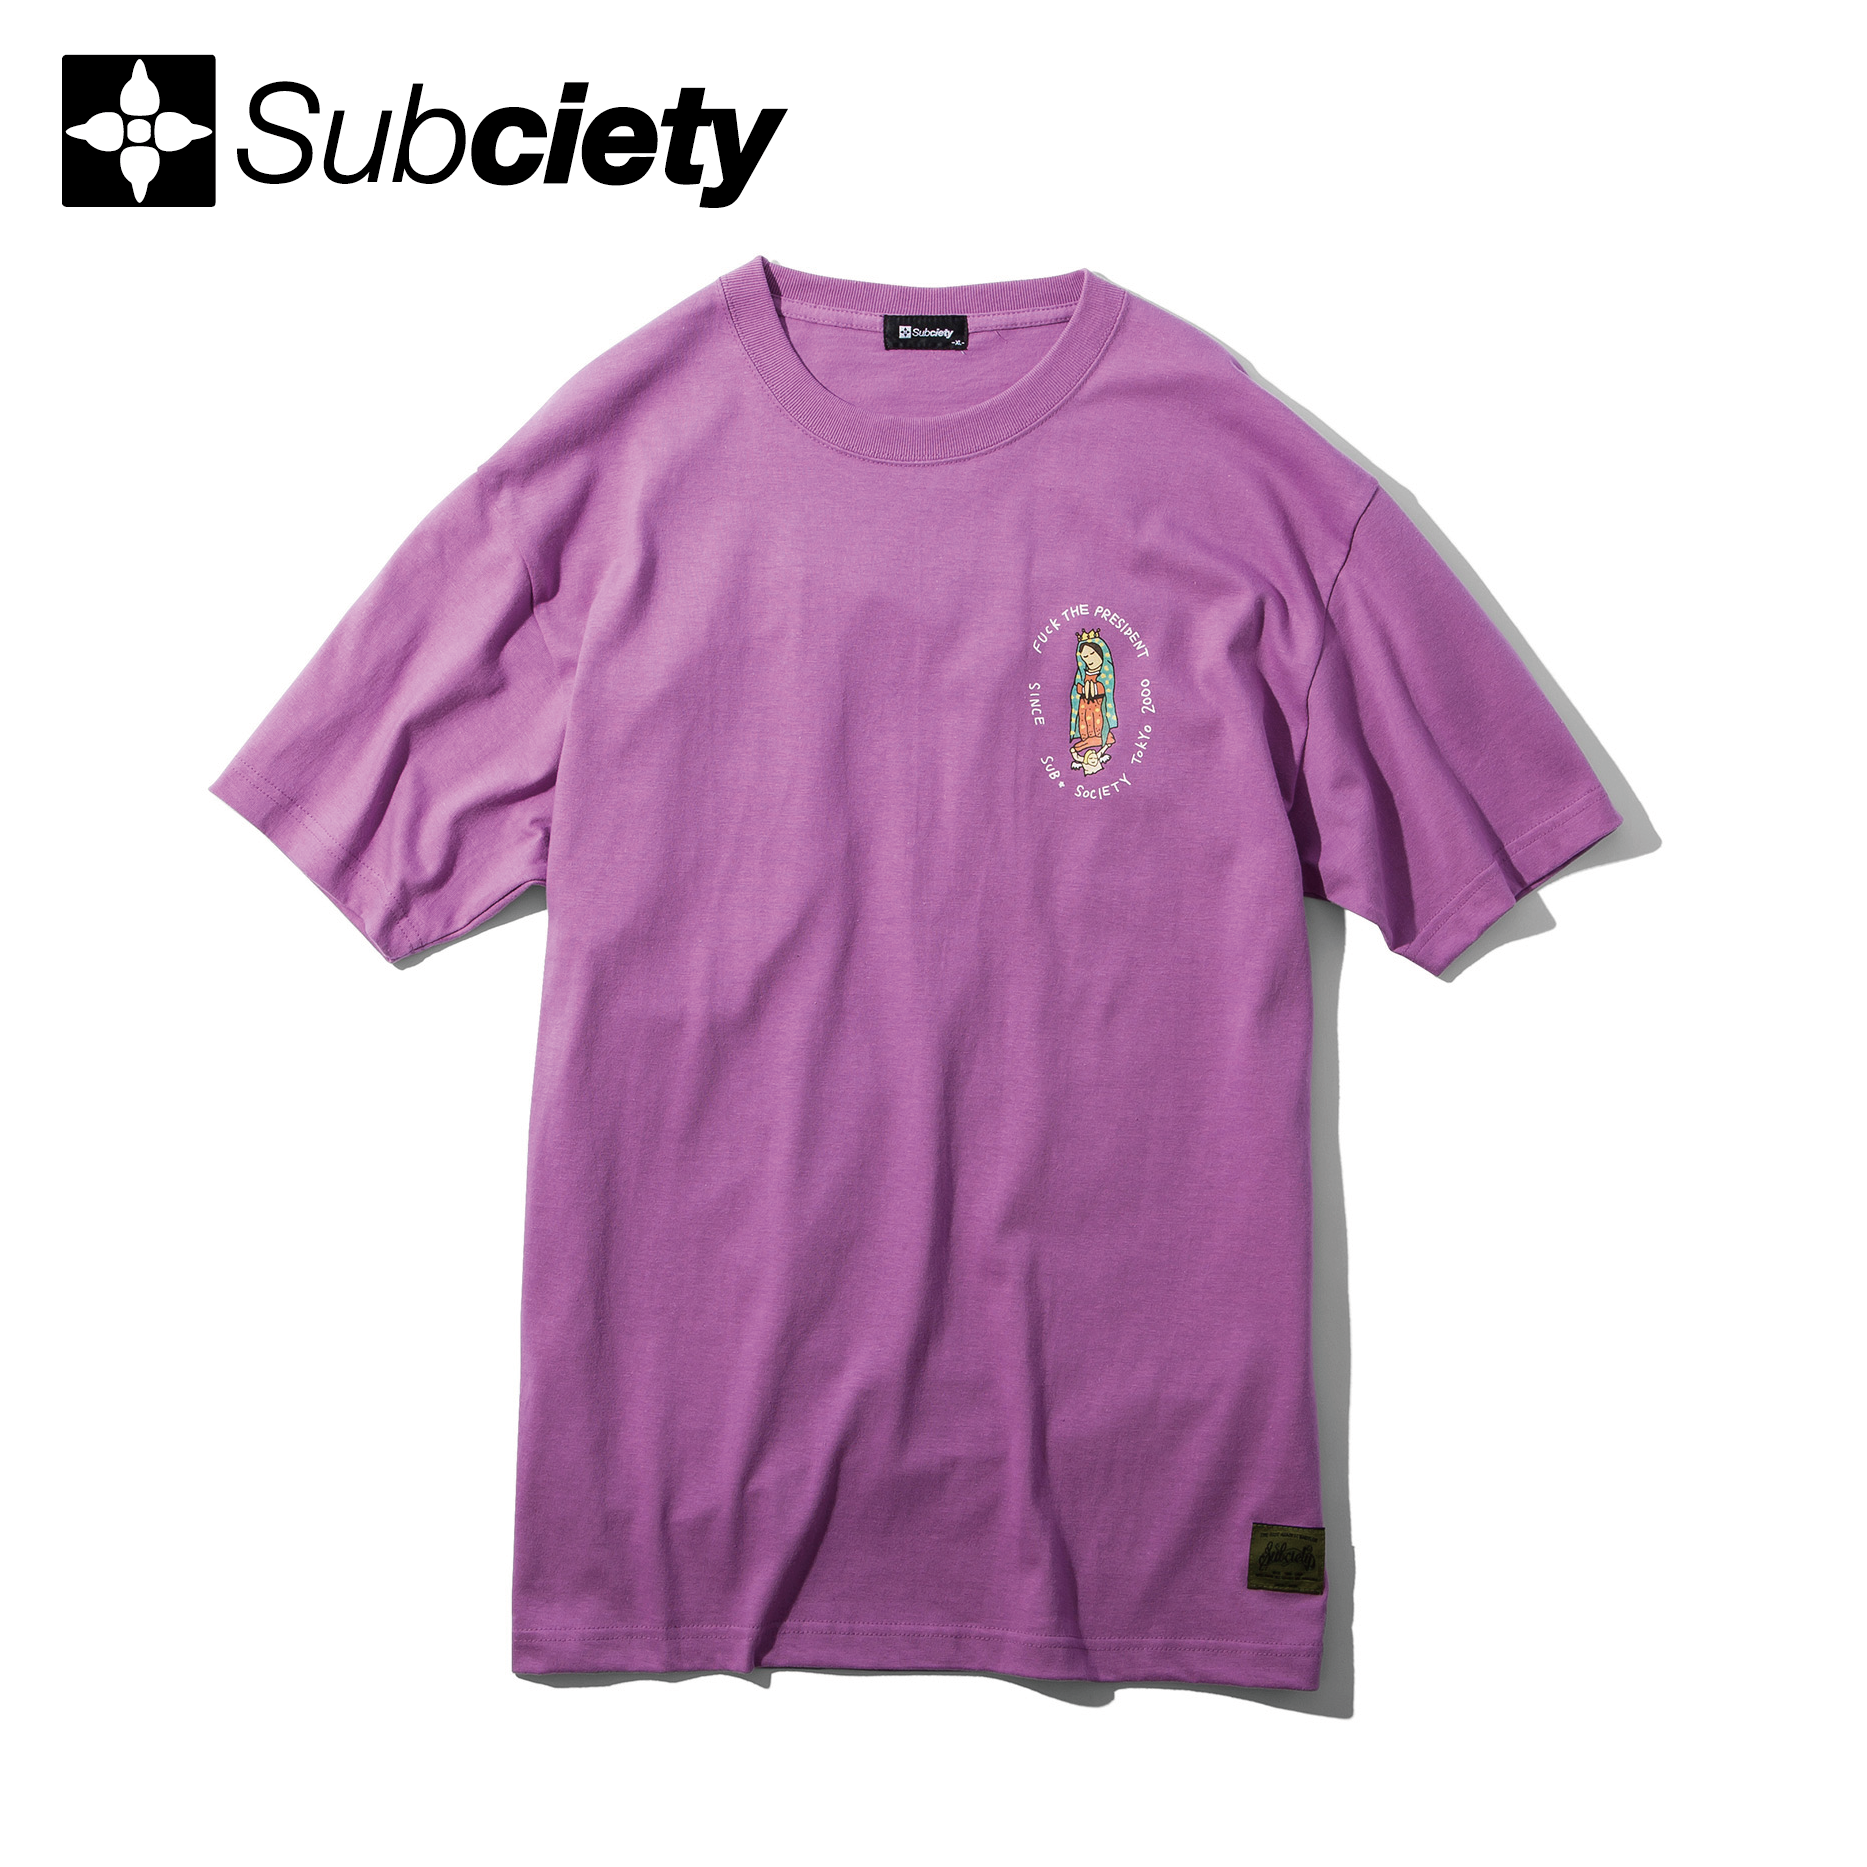 Subciety(サブサエティ) | Dear president S/S (Purple)